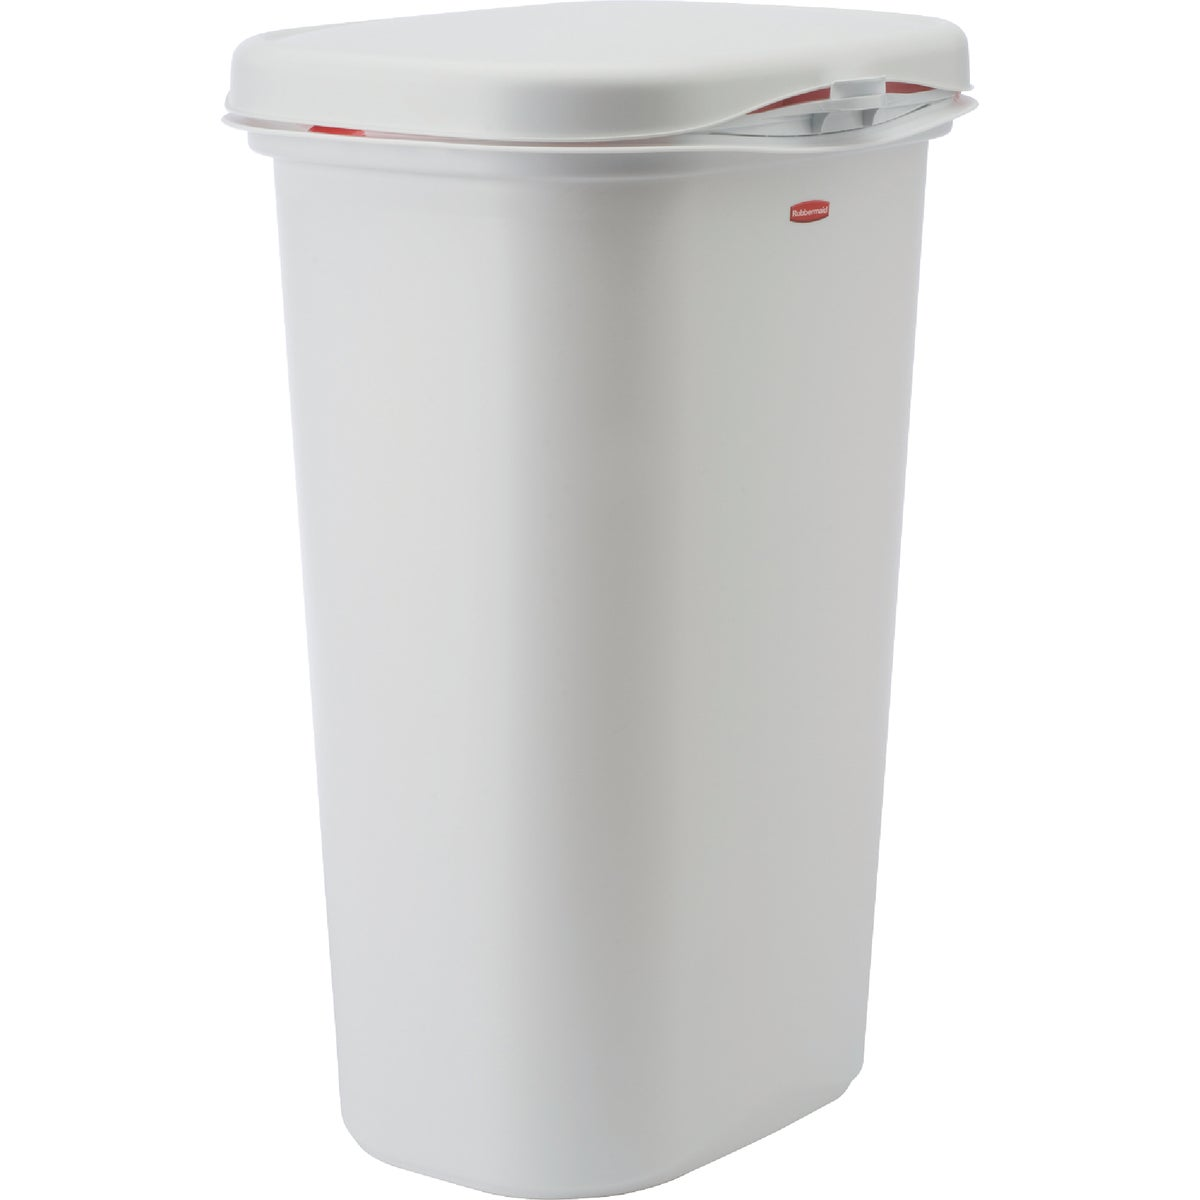 52QT WASTEBASKET W/LID - FG5L5800WHT by Rubbermaid Home